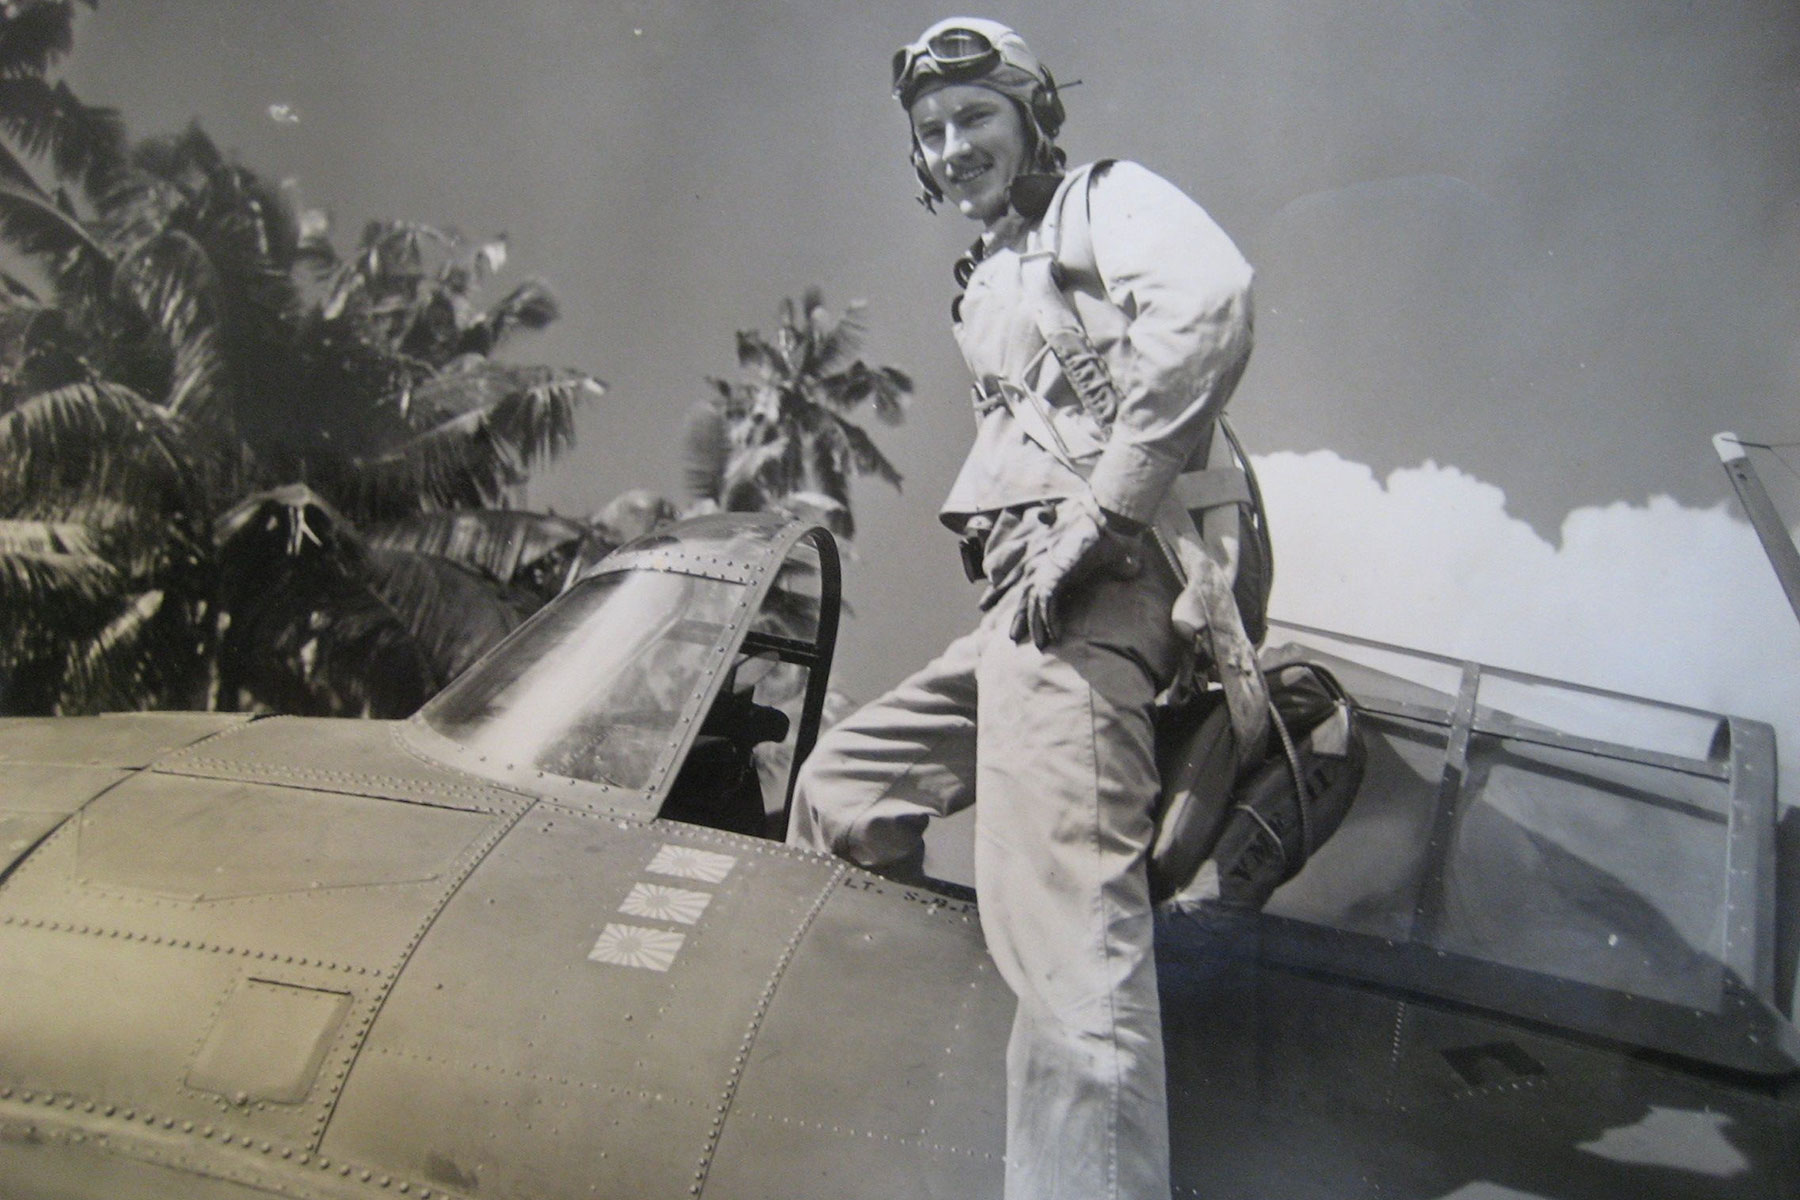 He's One of the Last Living WWII Marine Corps Pilots